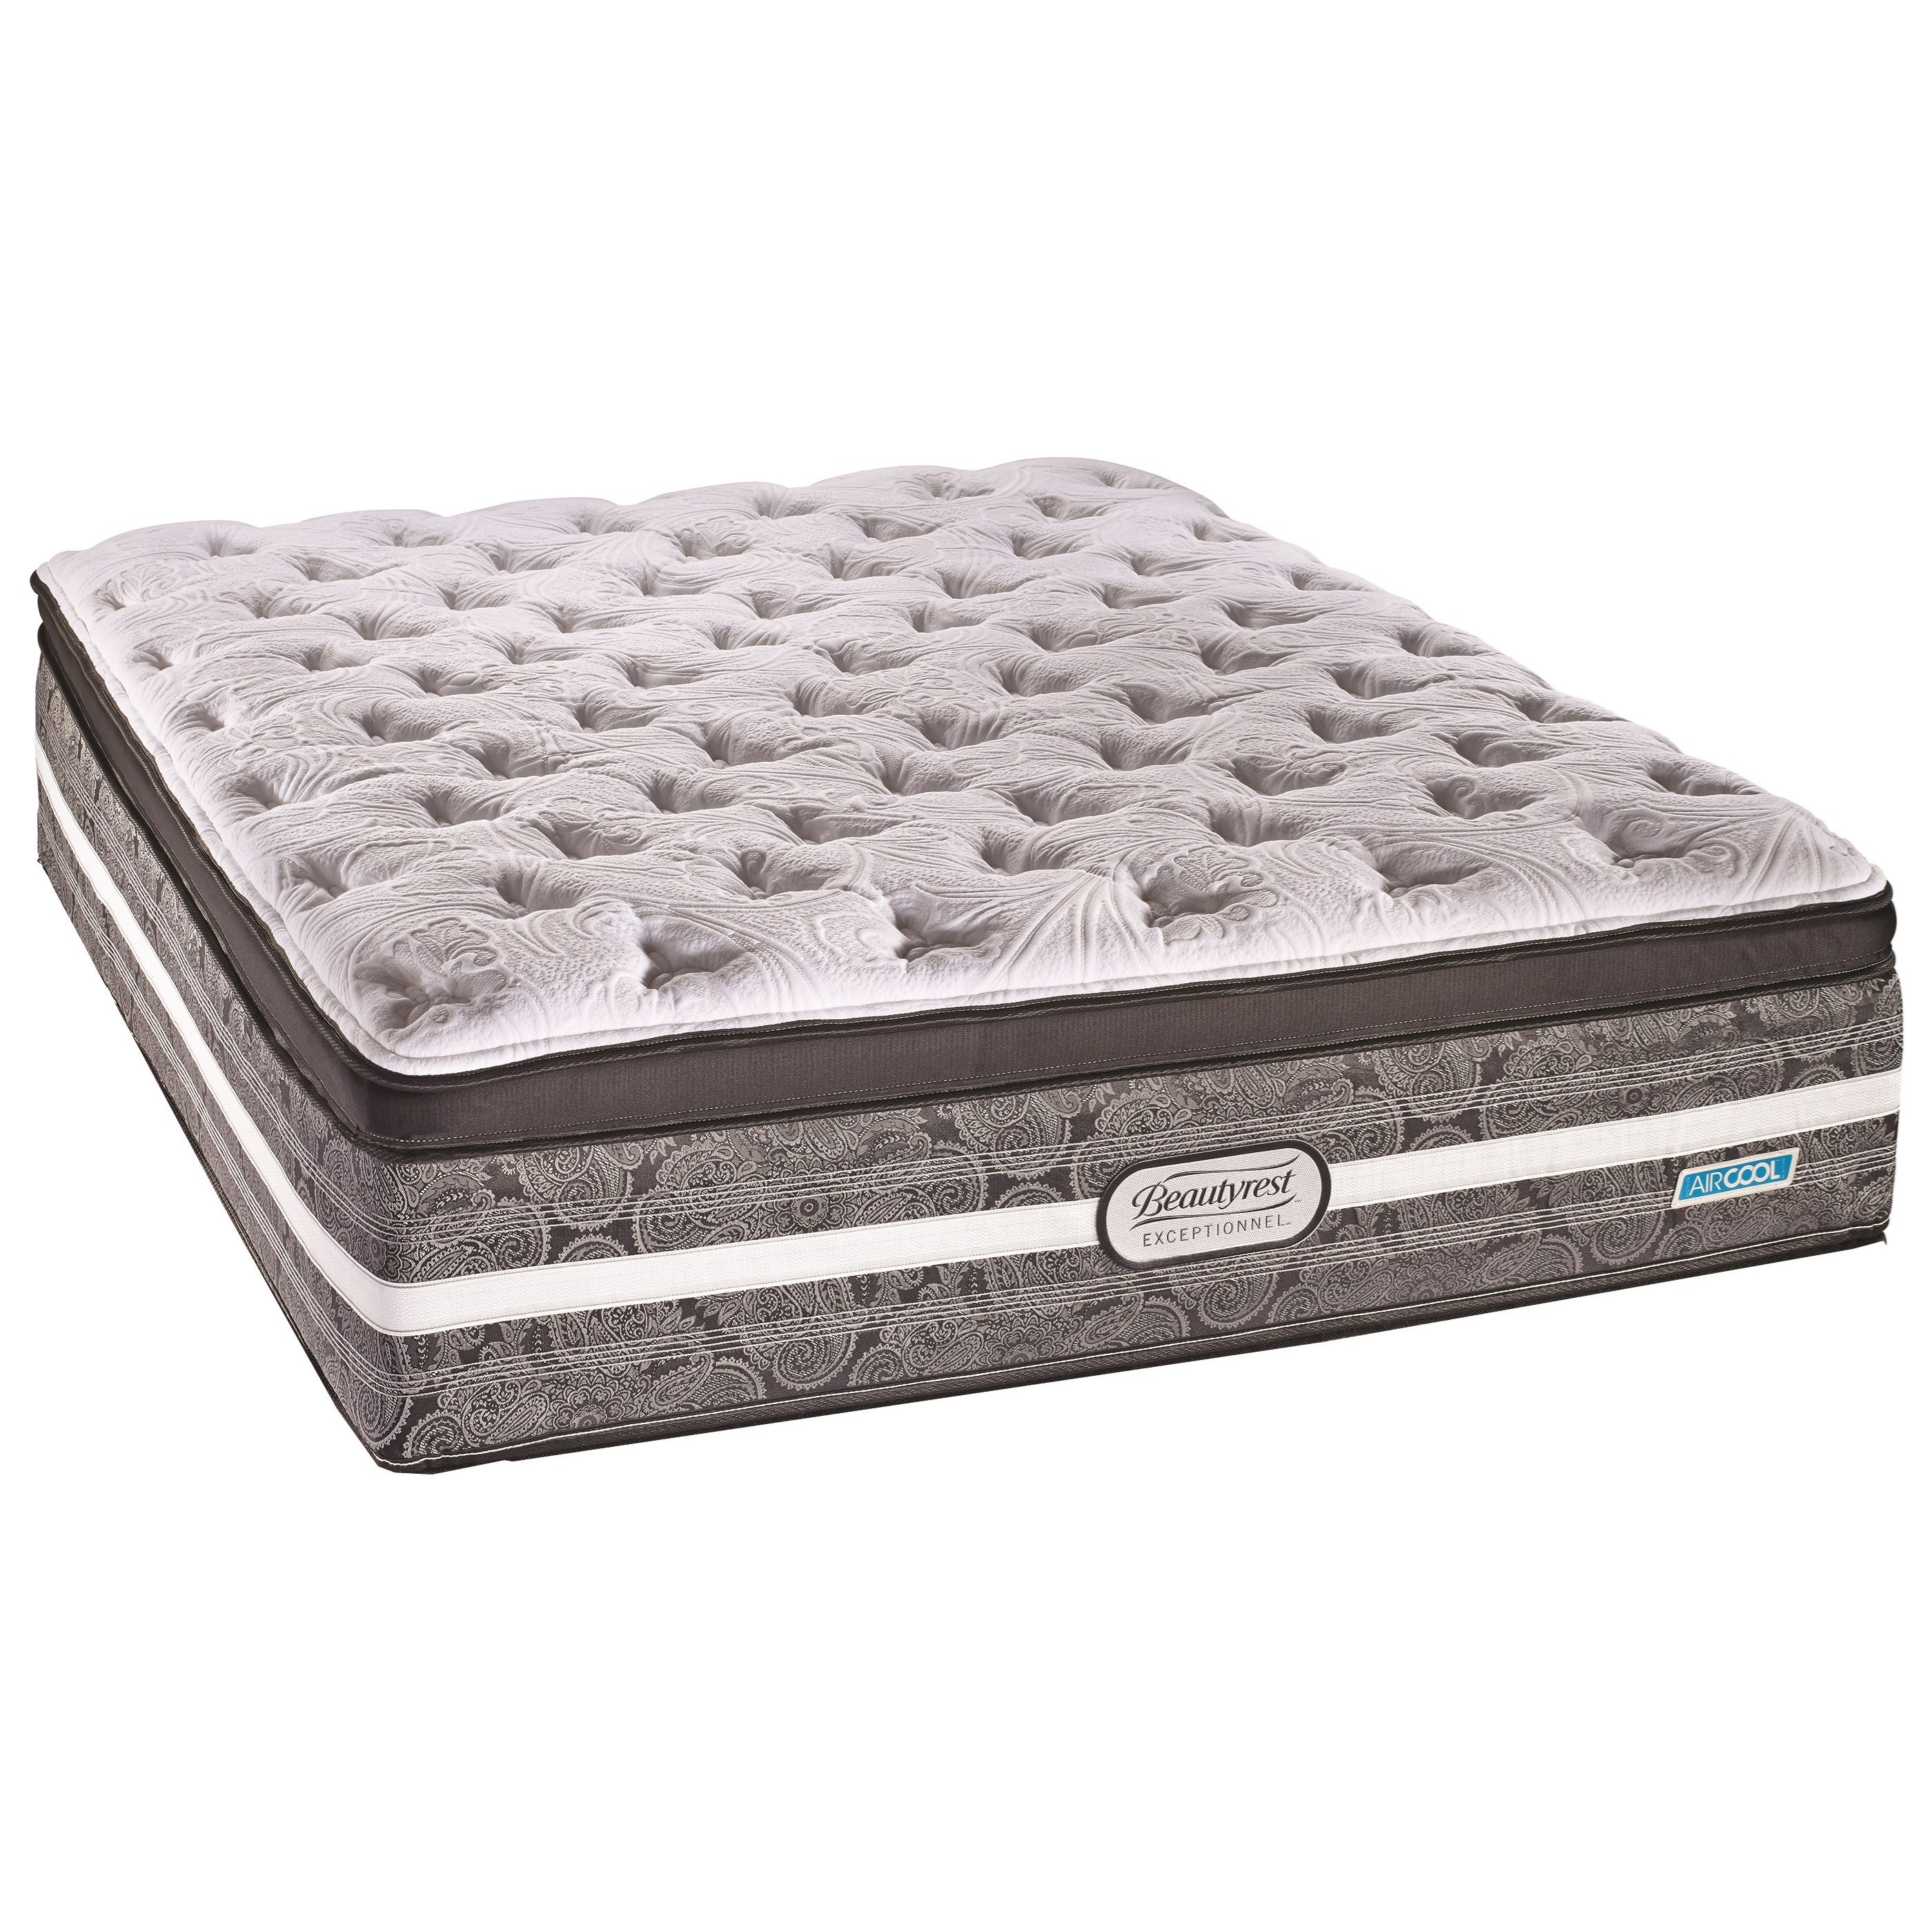 platinum hei westbrook beauty top luxury twin p wid qlt mattress pillow beautyrest prod firm rest